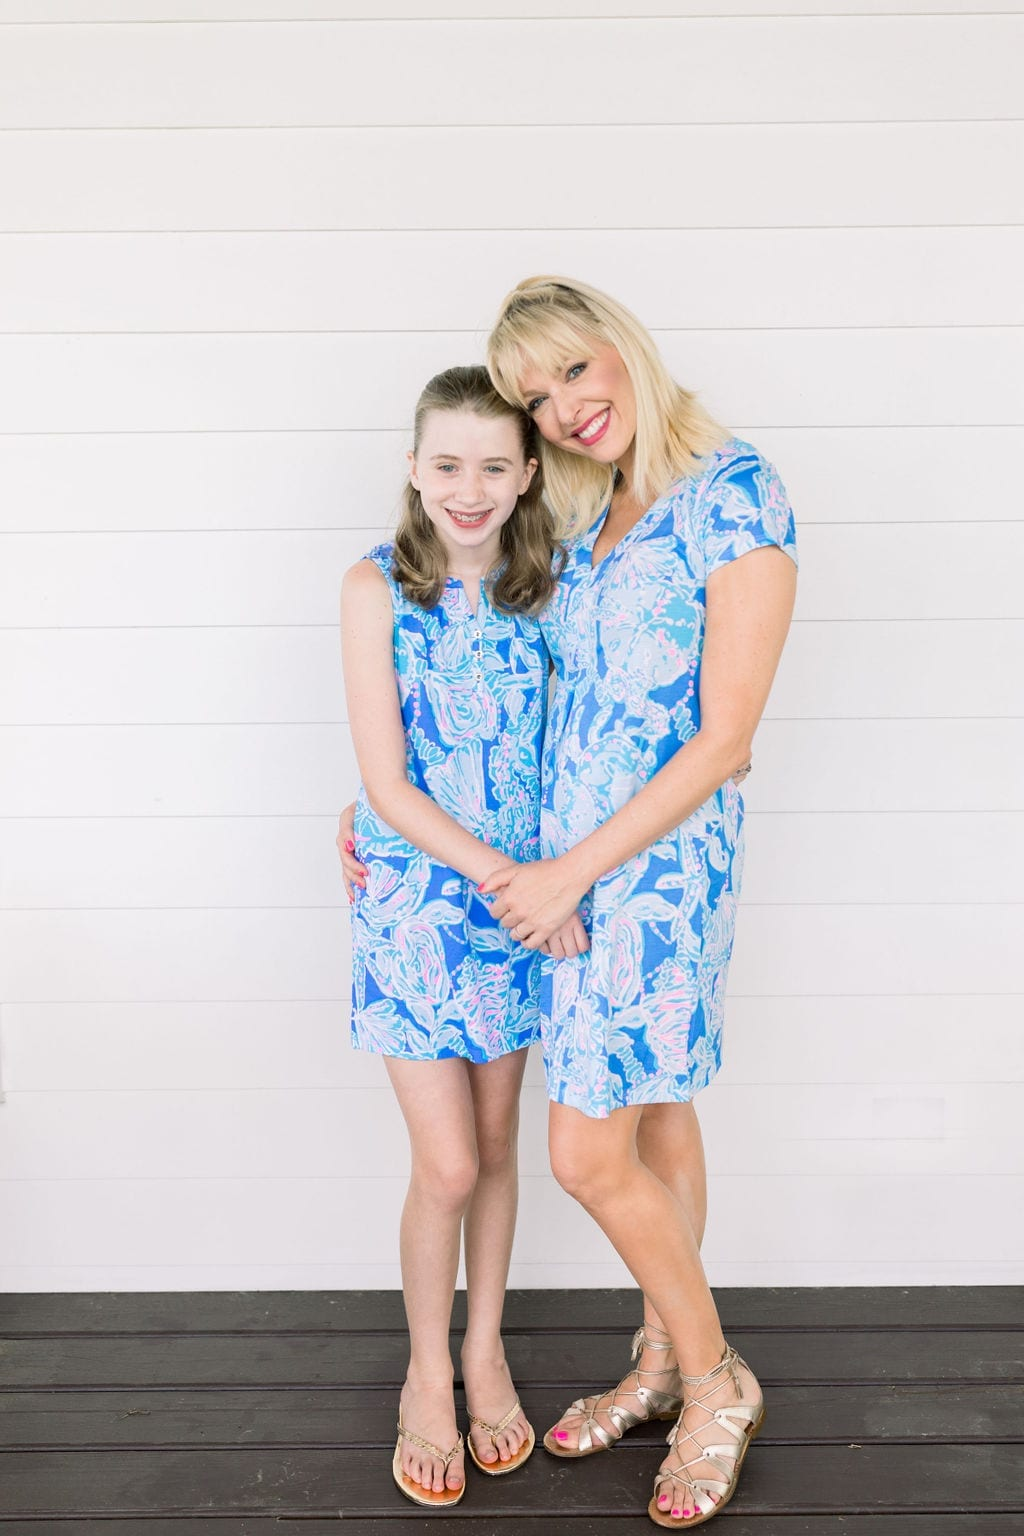 Lilly Pulitzer mommy and me dresses. Blue Lilly Pulitzer Mini Essie dress for 12 year old girl and t shirt Lilly dress for women.